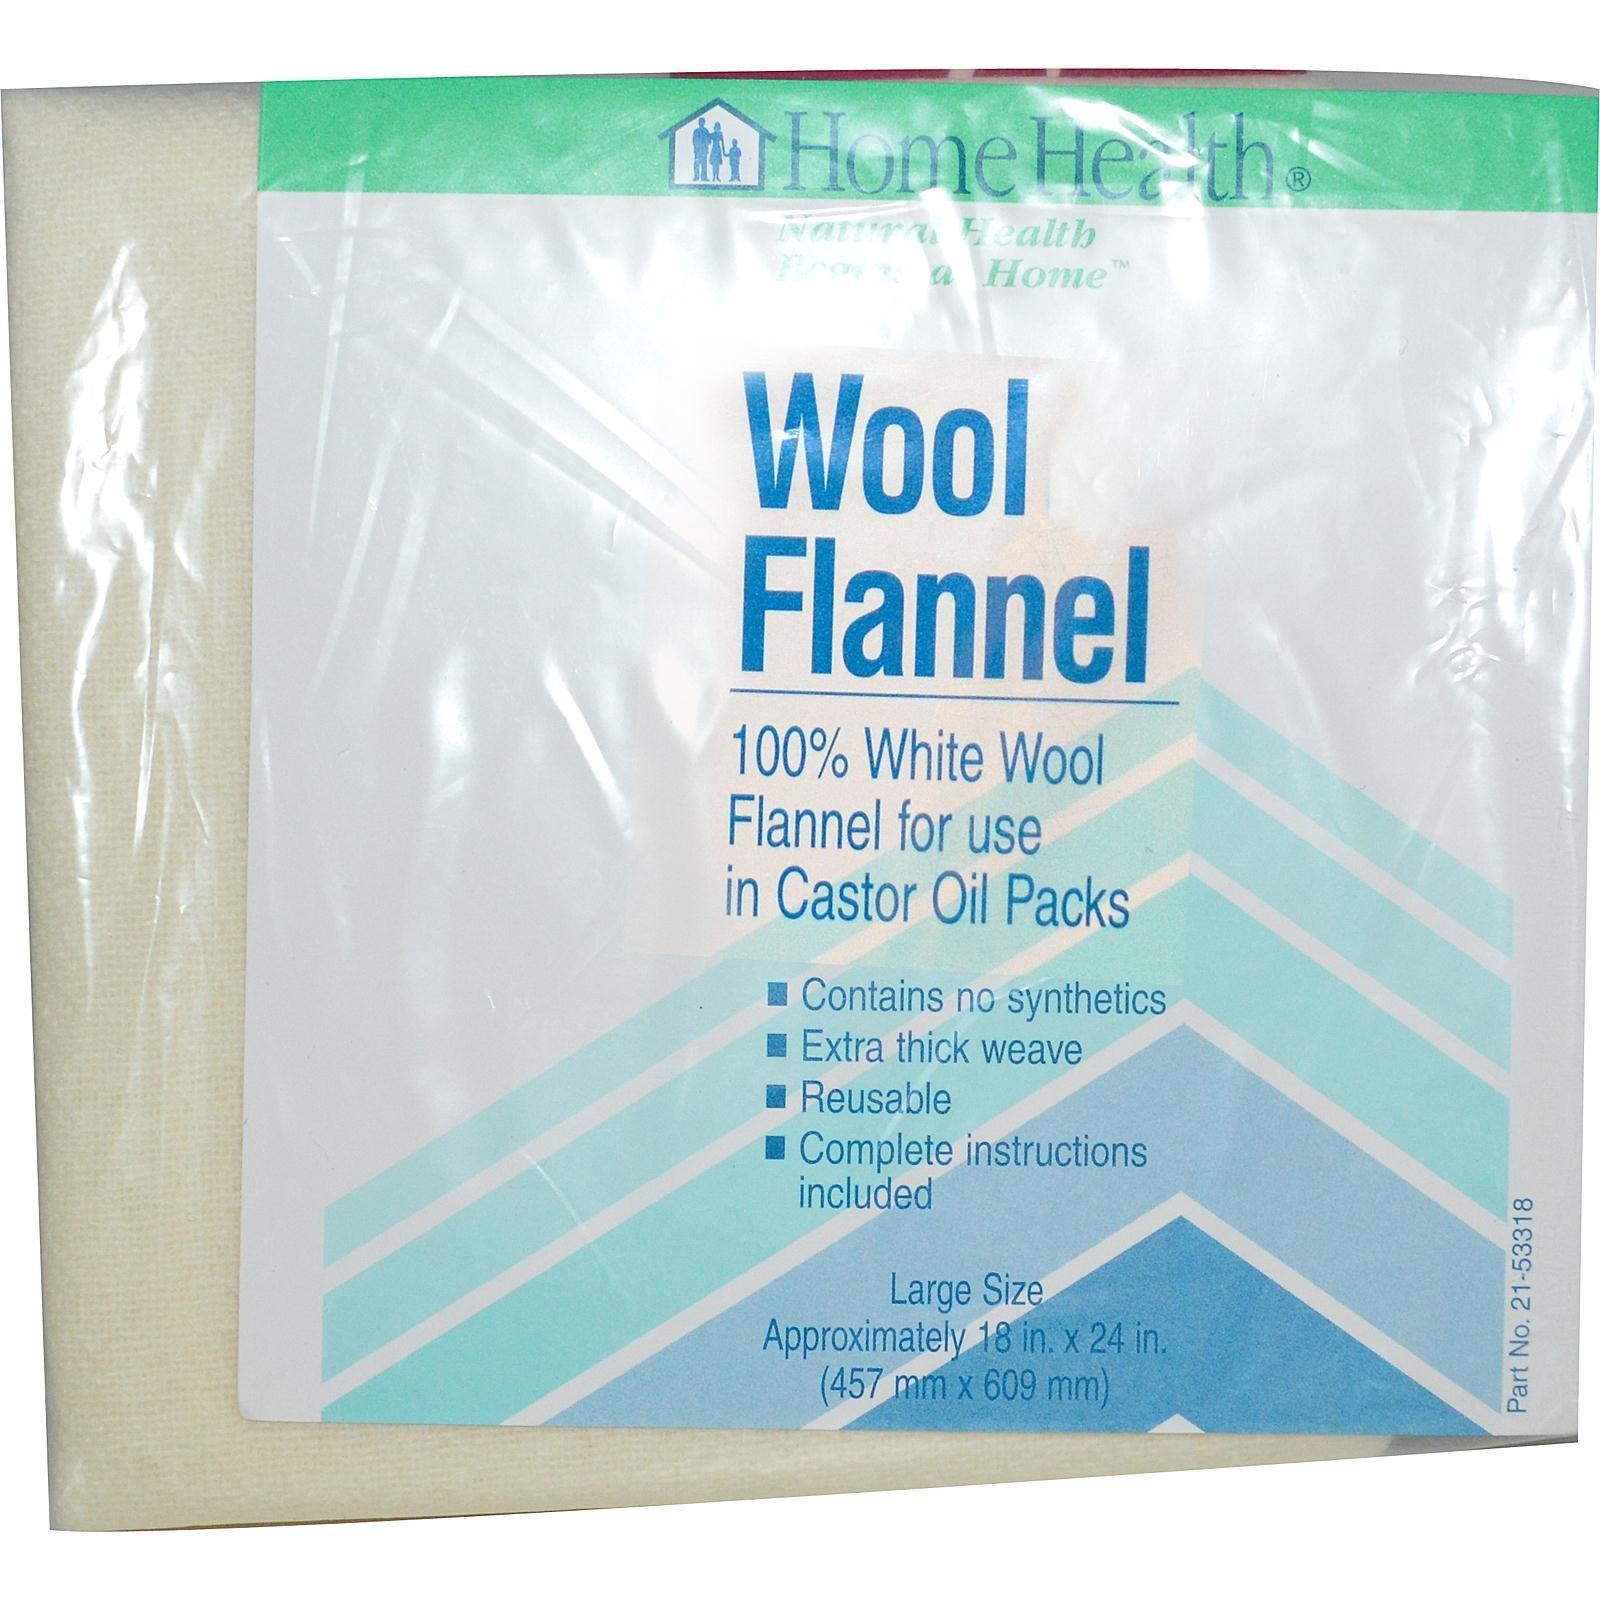 Home Health Wool Flannel Wool Flannel - 1 packets